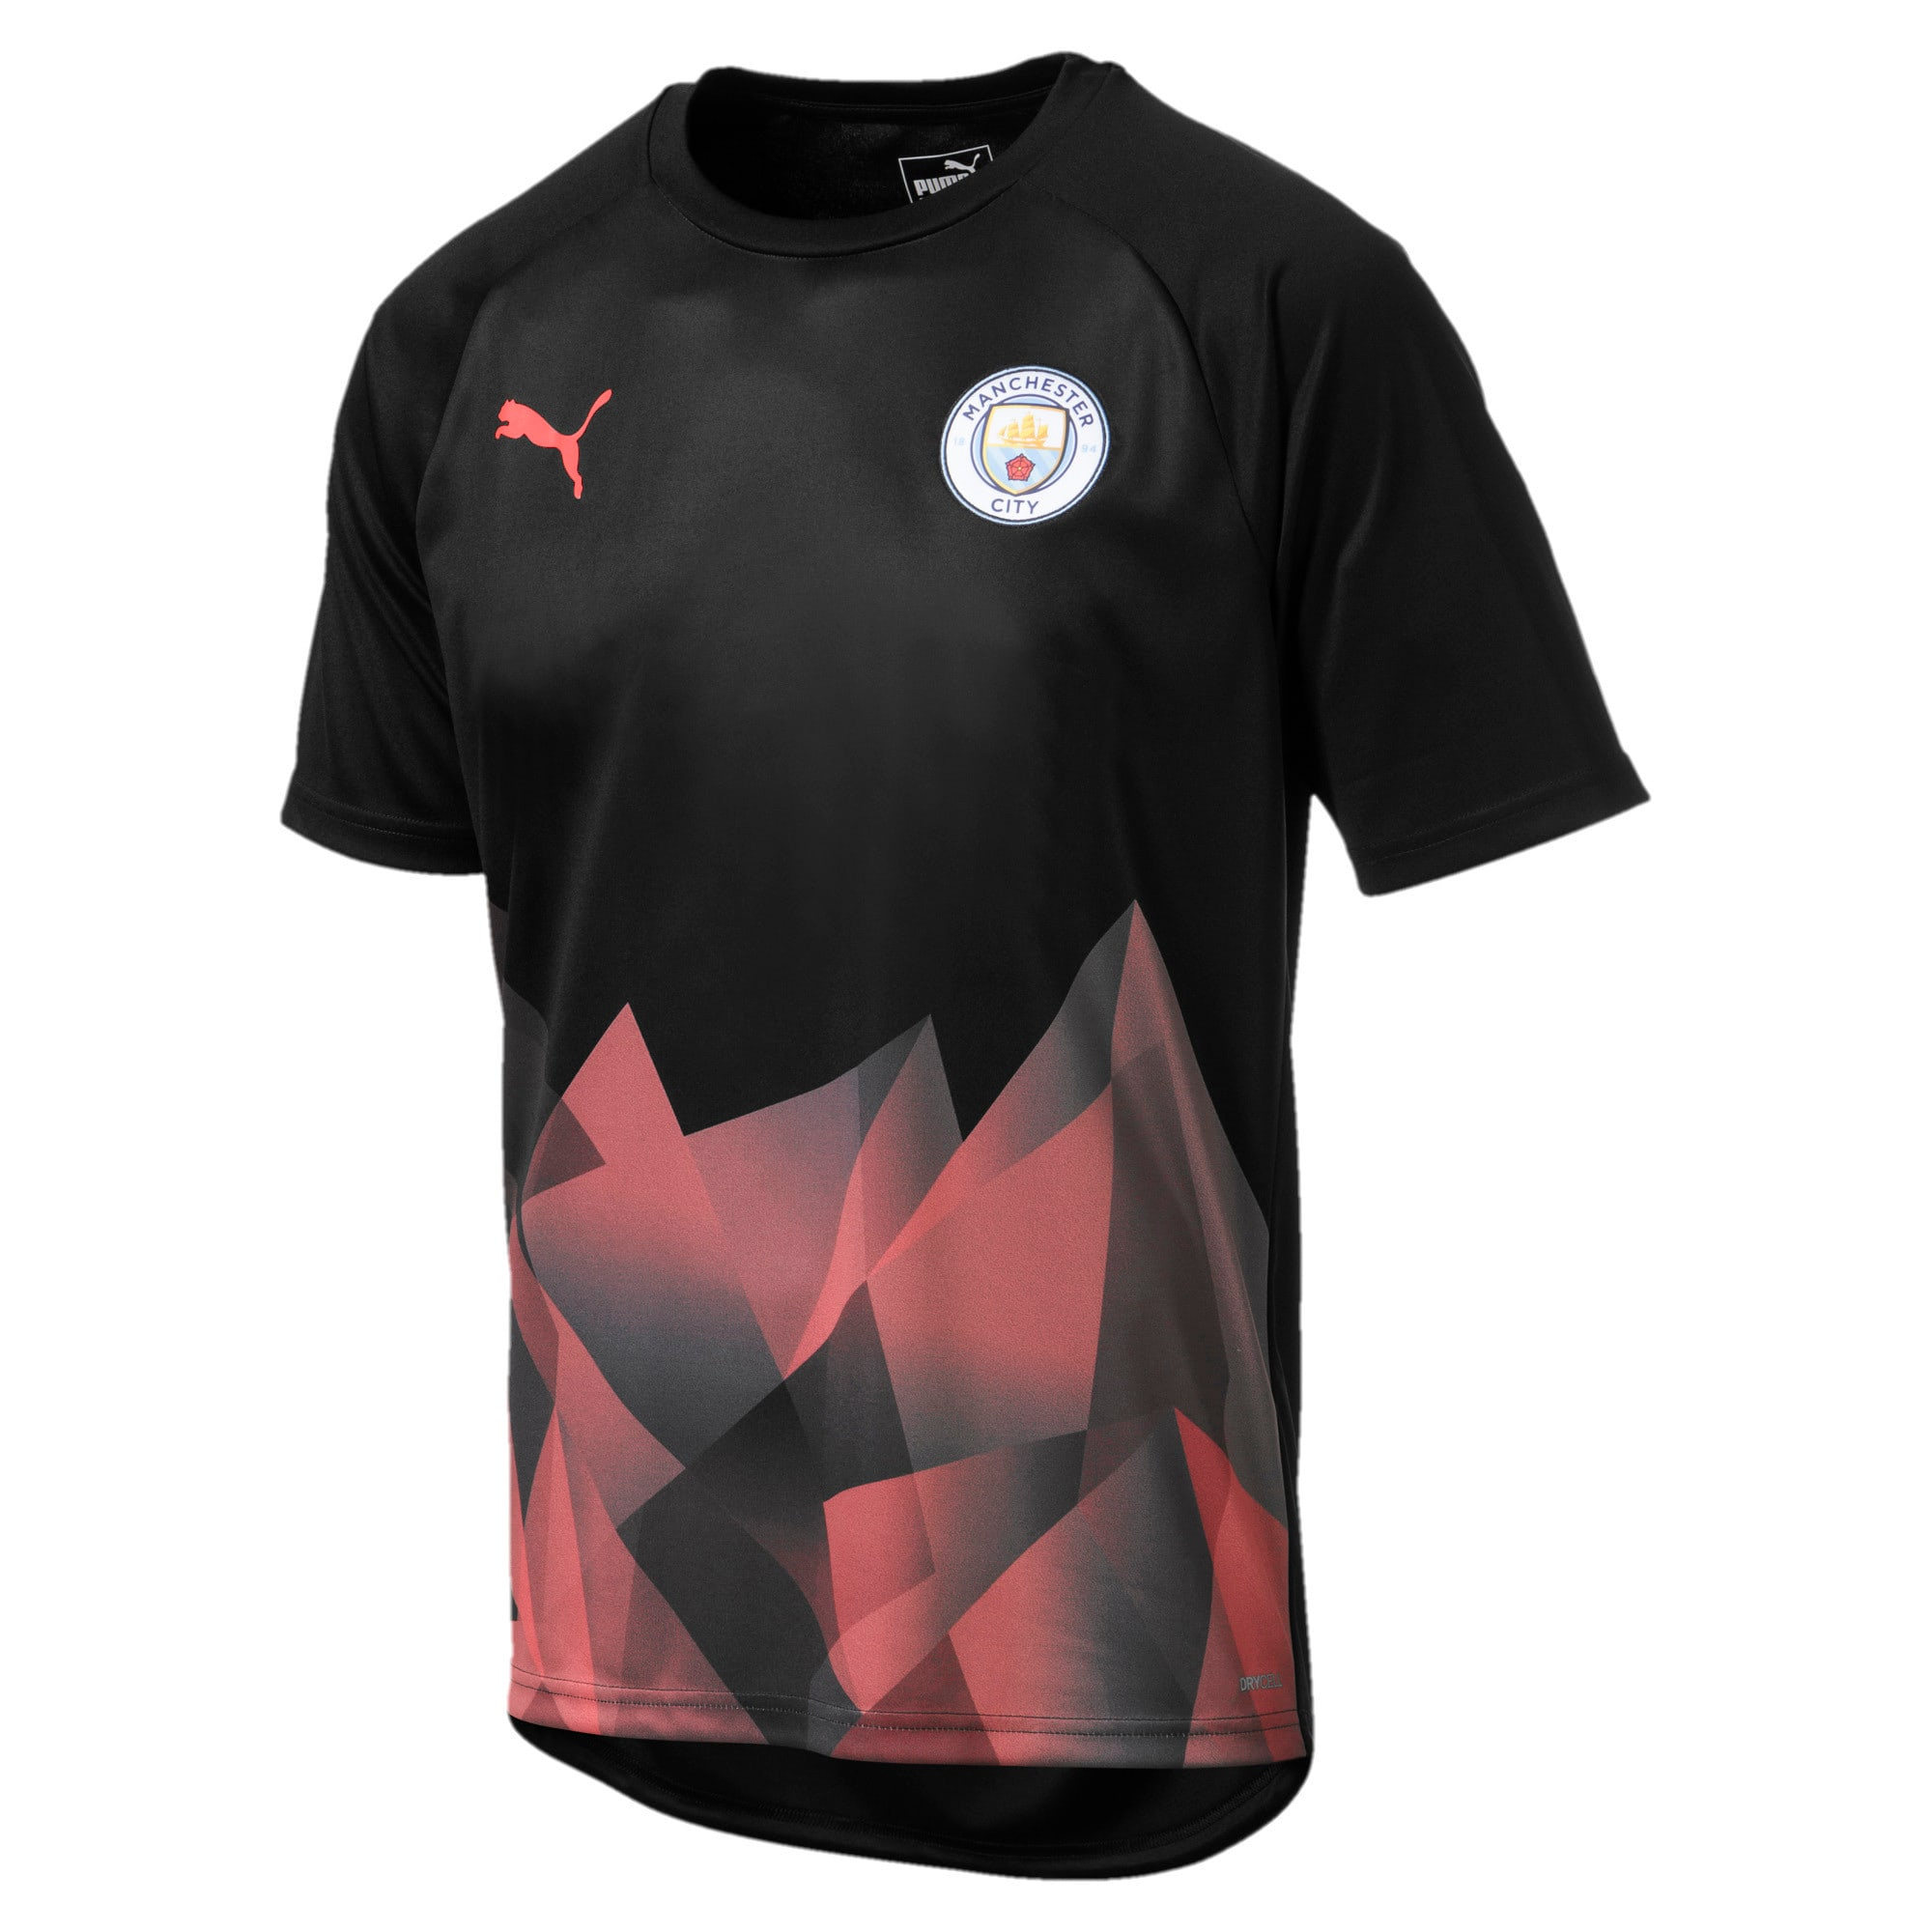 Thumbnail 1 of Man City Men's International Stadium Short Sleeve Jersey, Puma Black-Georgia Peach, medium